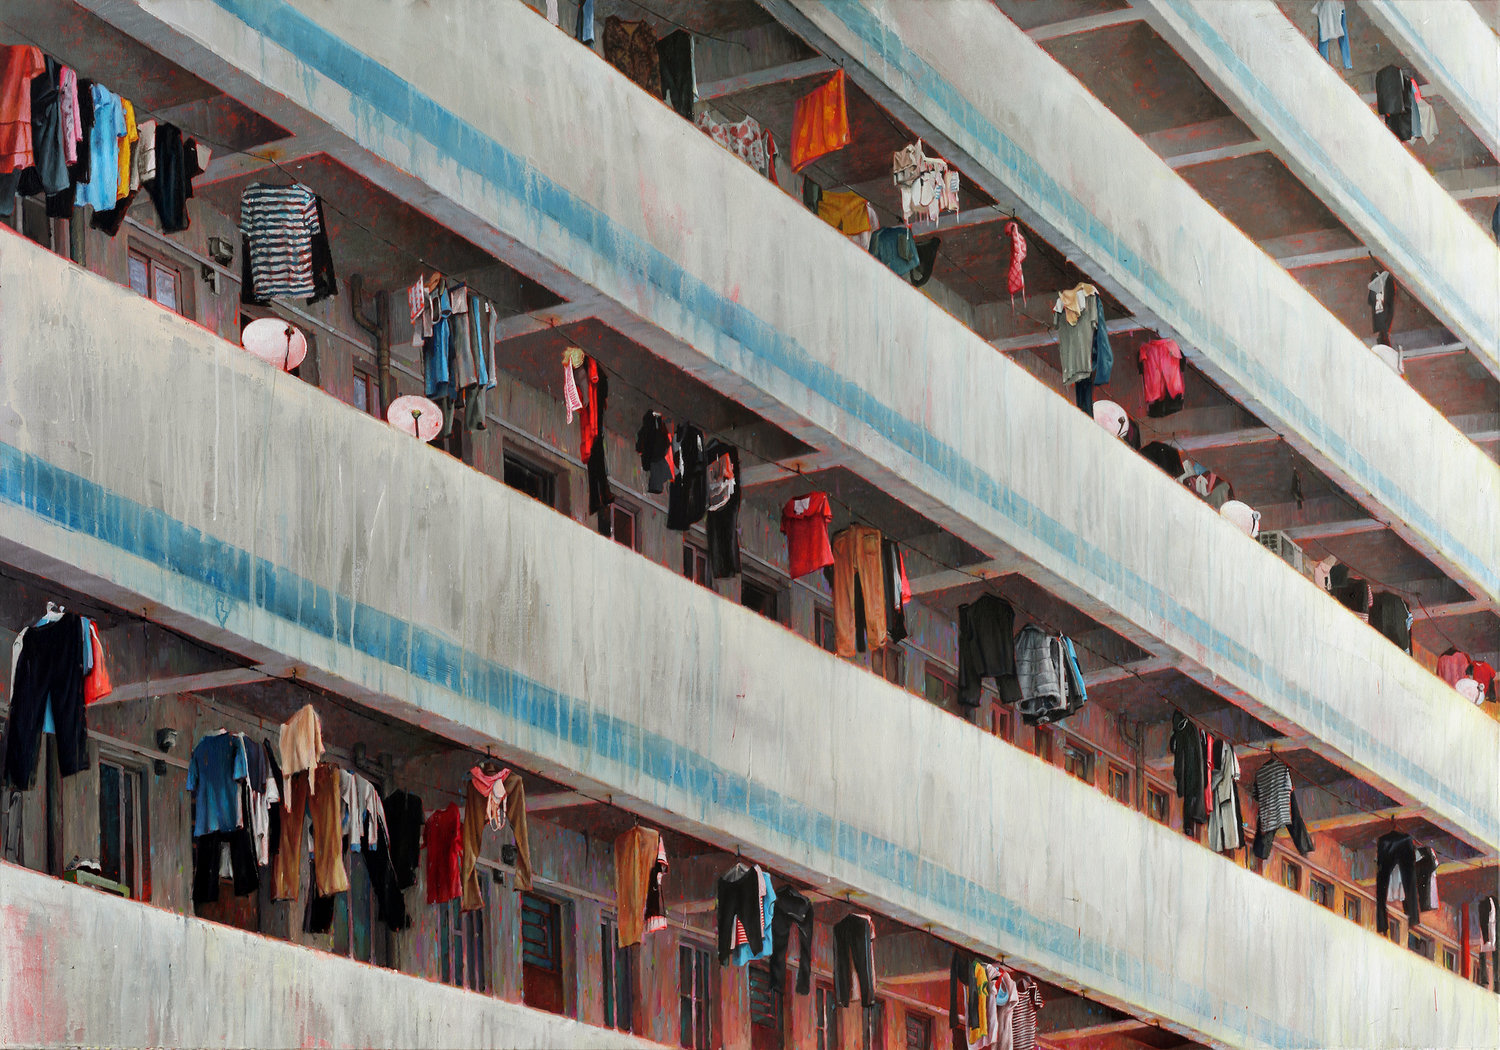 'Factory Housing', David Agenjo, Acrylic and oil on canvas, 140 x 200 x 3 cm